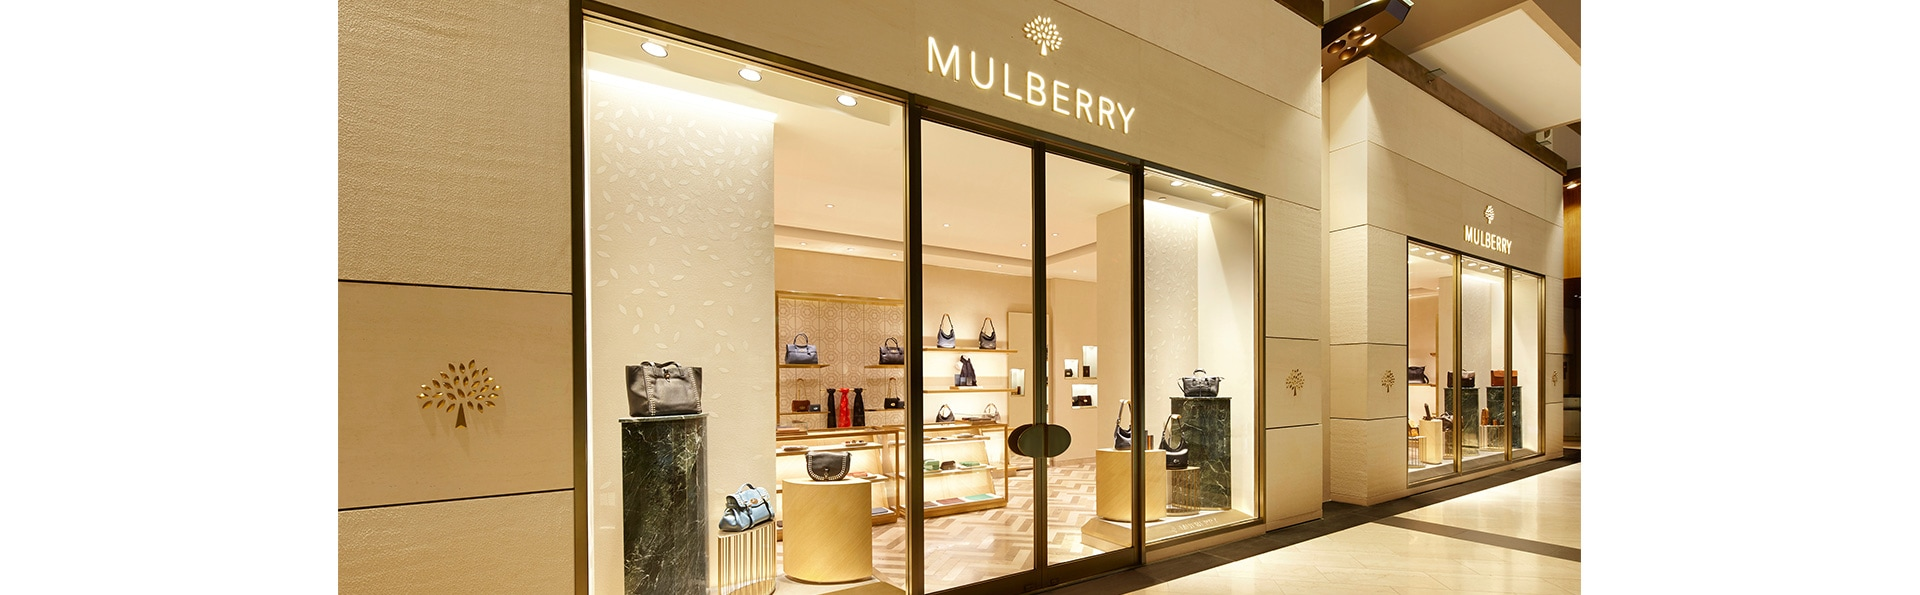 Mulberry at The Shoppes at Marina Bay Sands